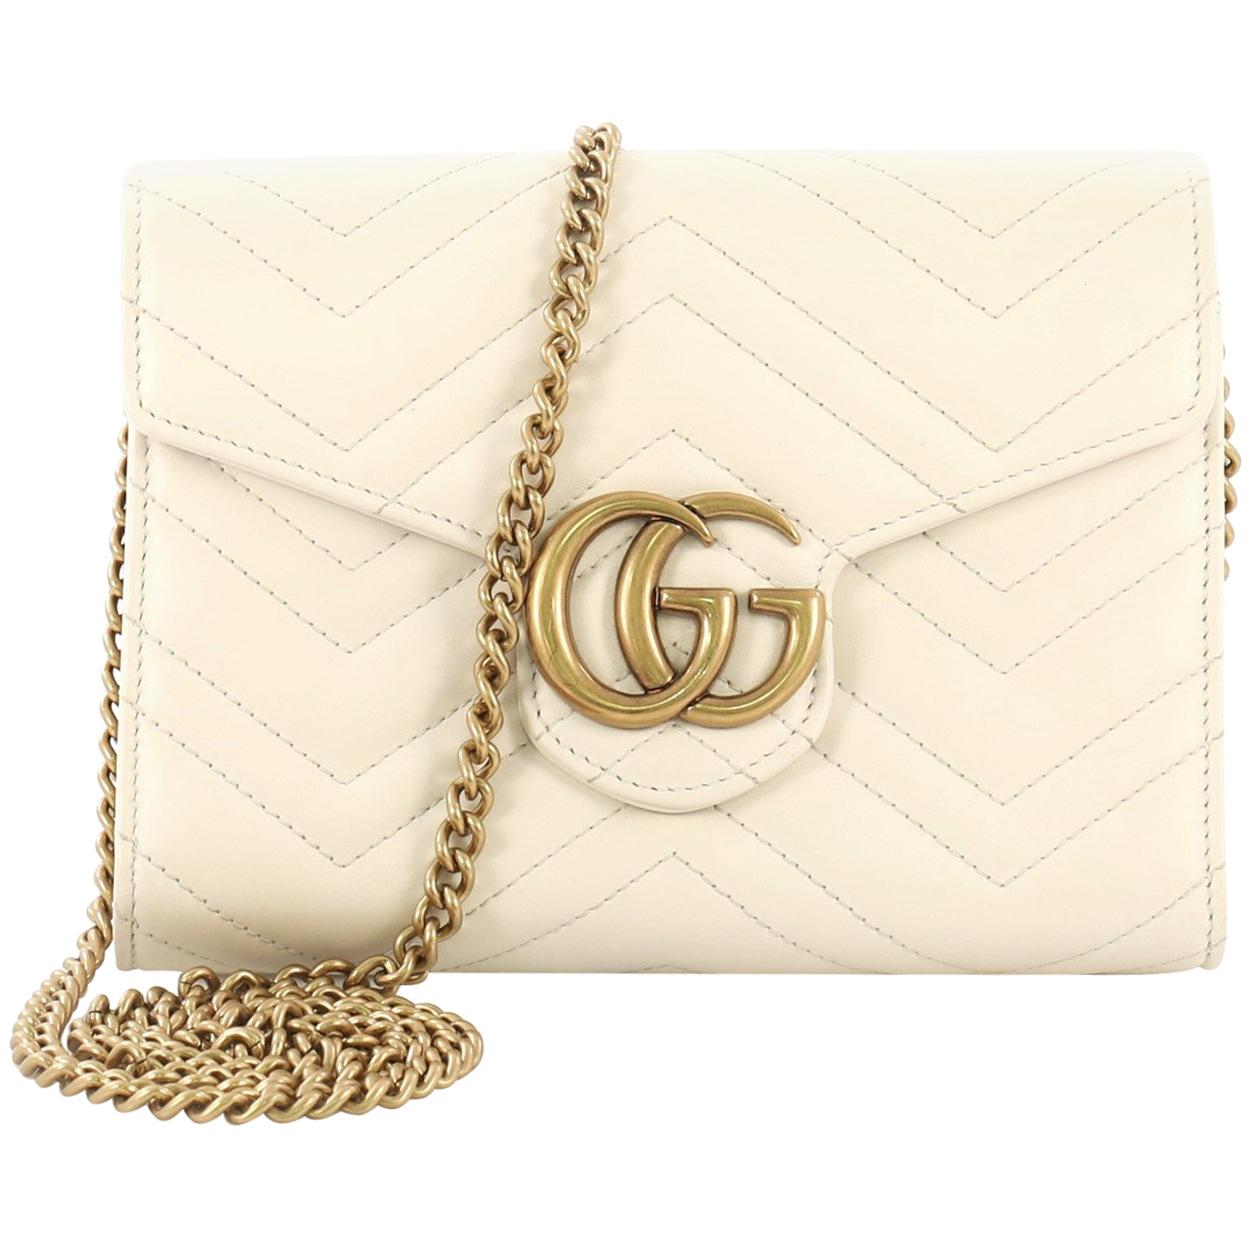 d051f847874d Vintage Gucci Wallets and Small Accessories - 102 For Sale at 1stdibs